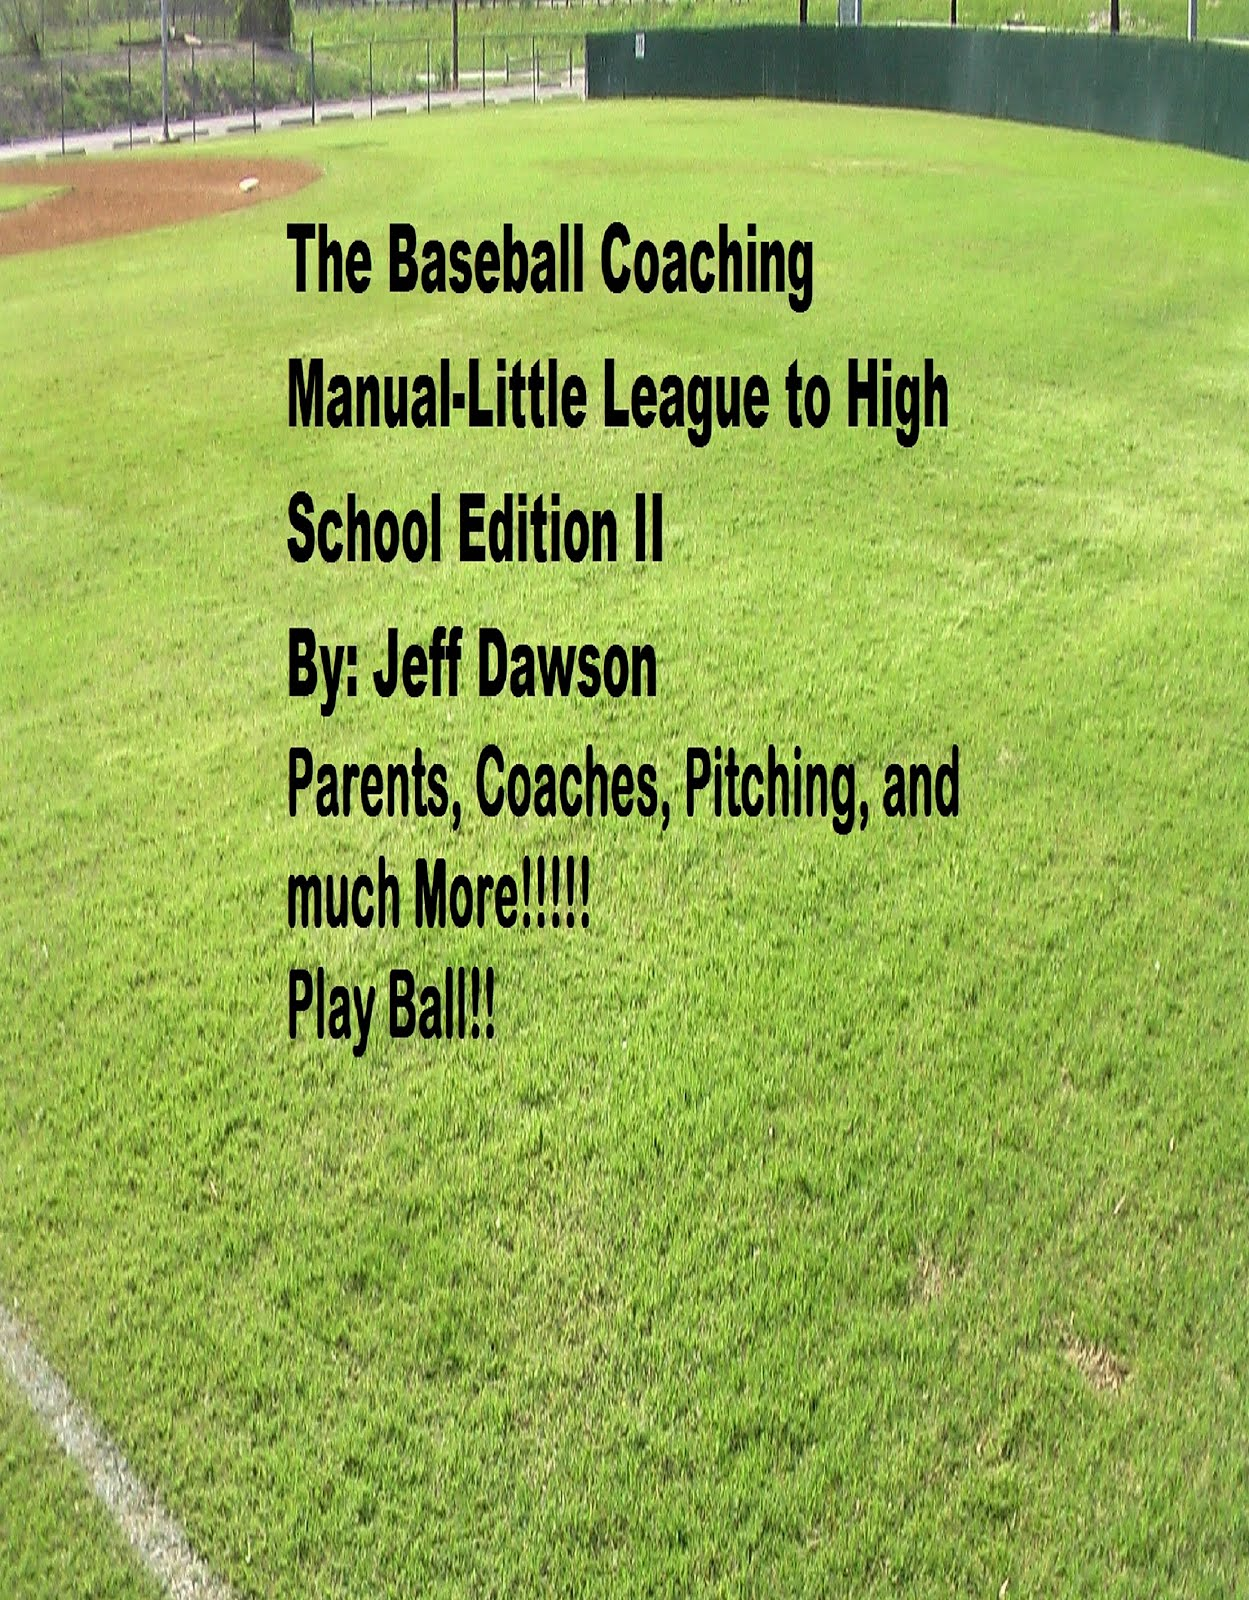 The Baseball Coaching Manual